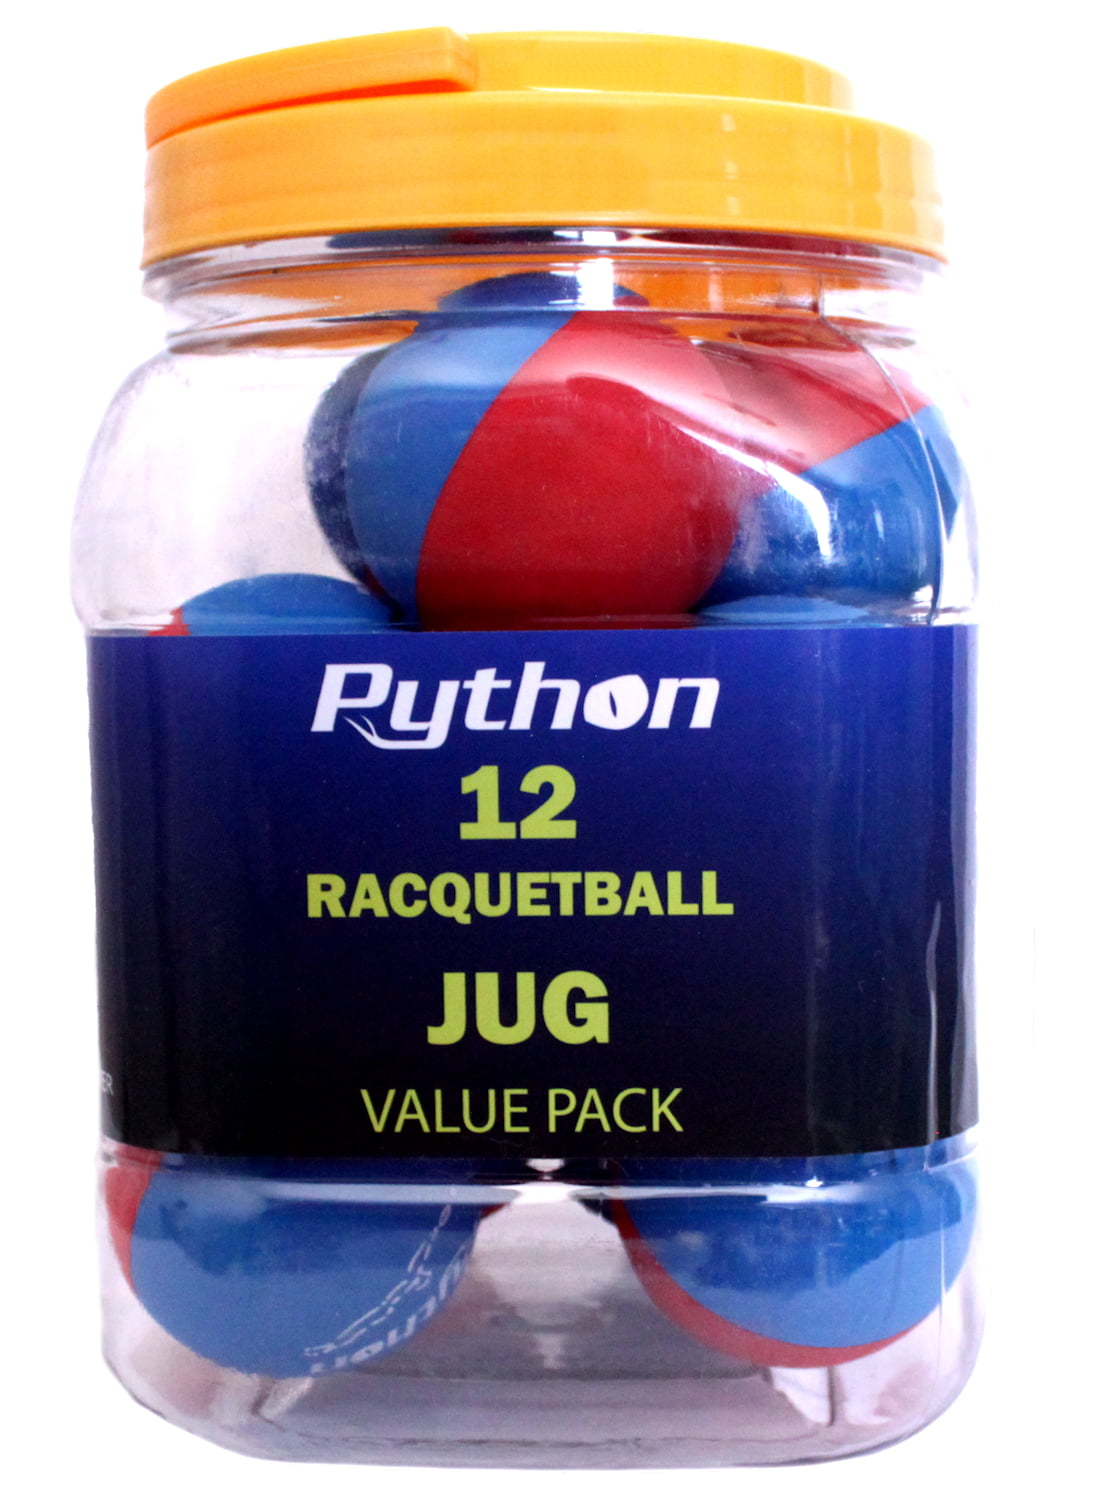 Python RG Multi Colored Racquetballs (Value Pack 12 Ball Jug Endorsed by Racquetball Legend Ruben Gonzalez!) by